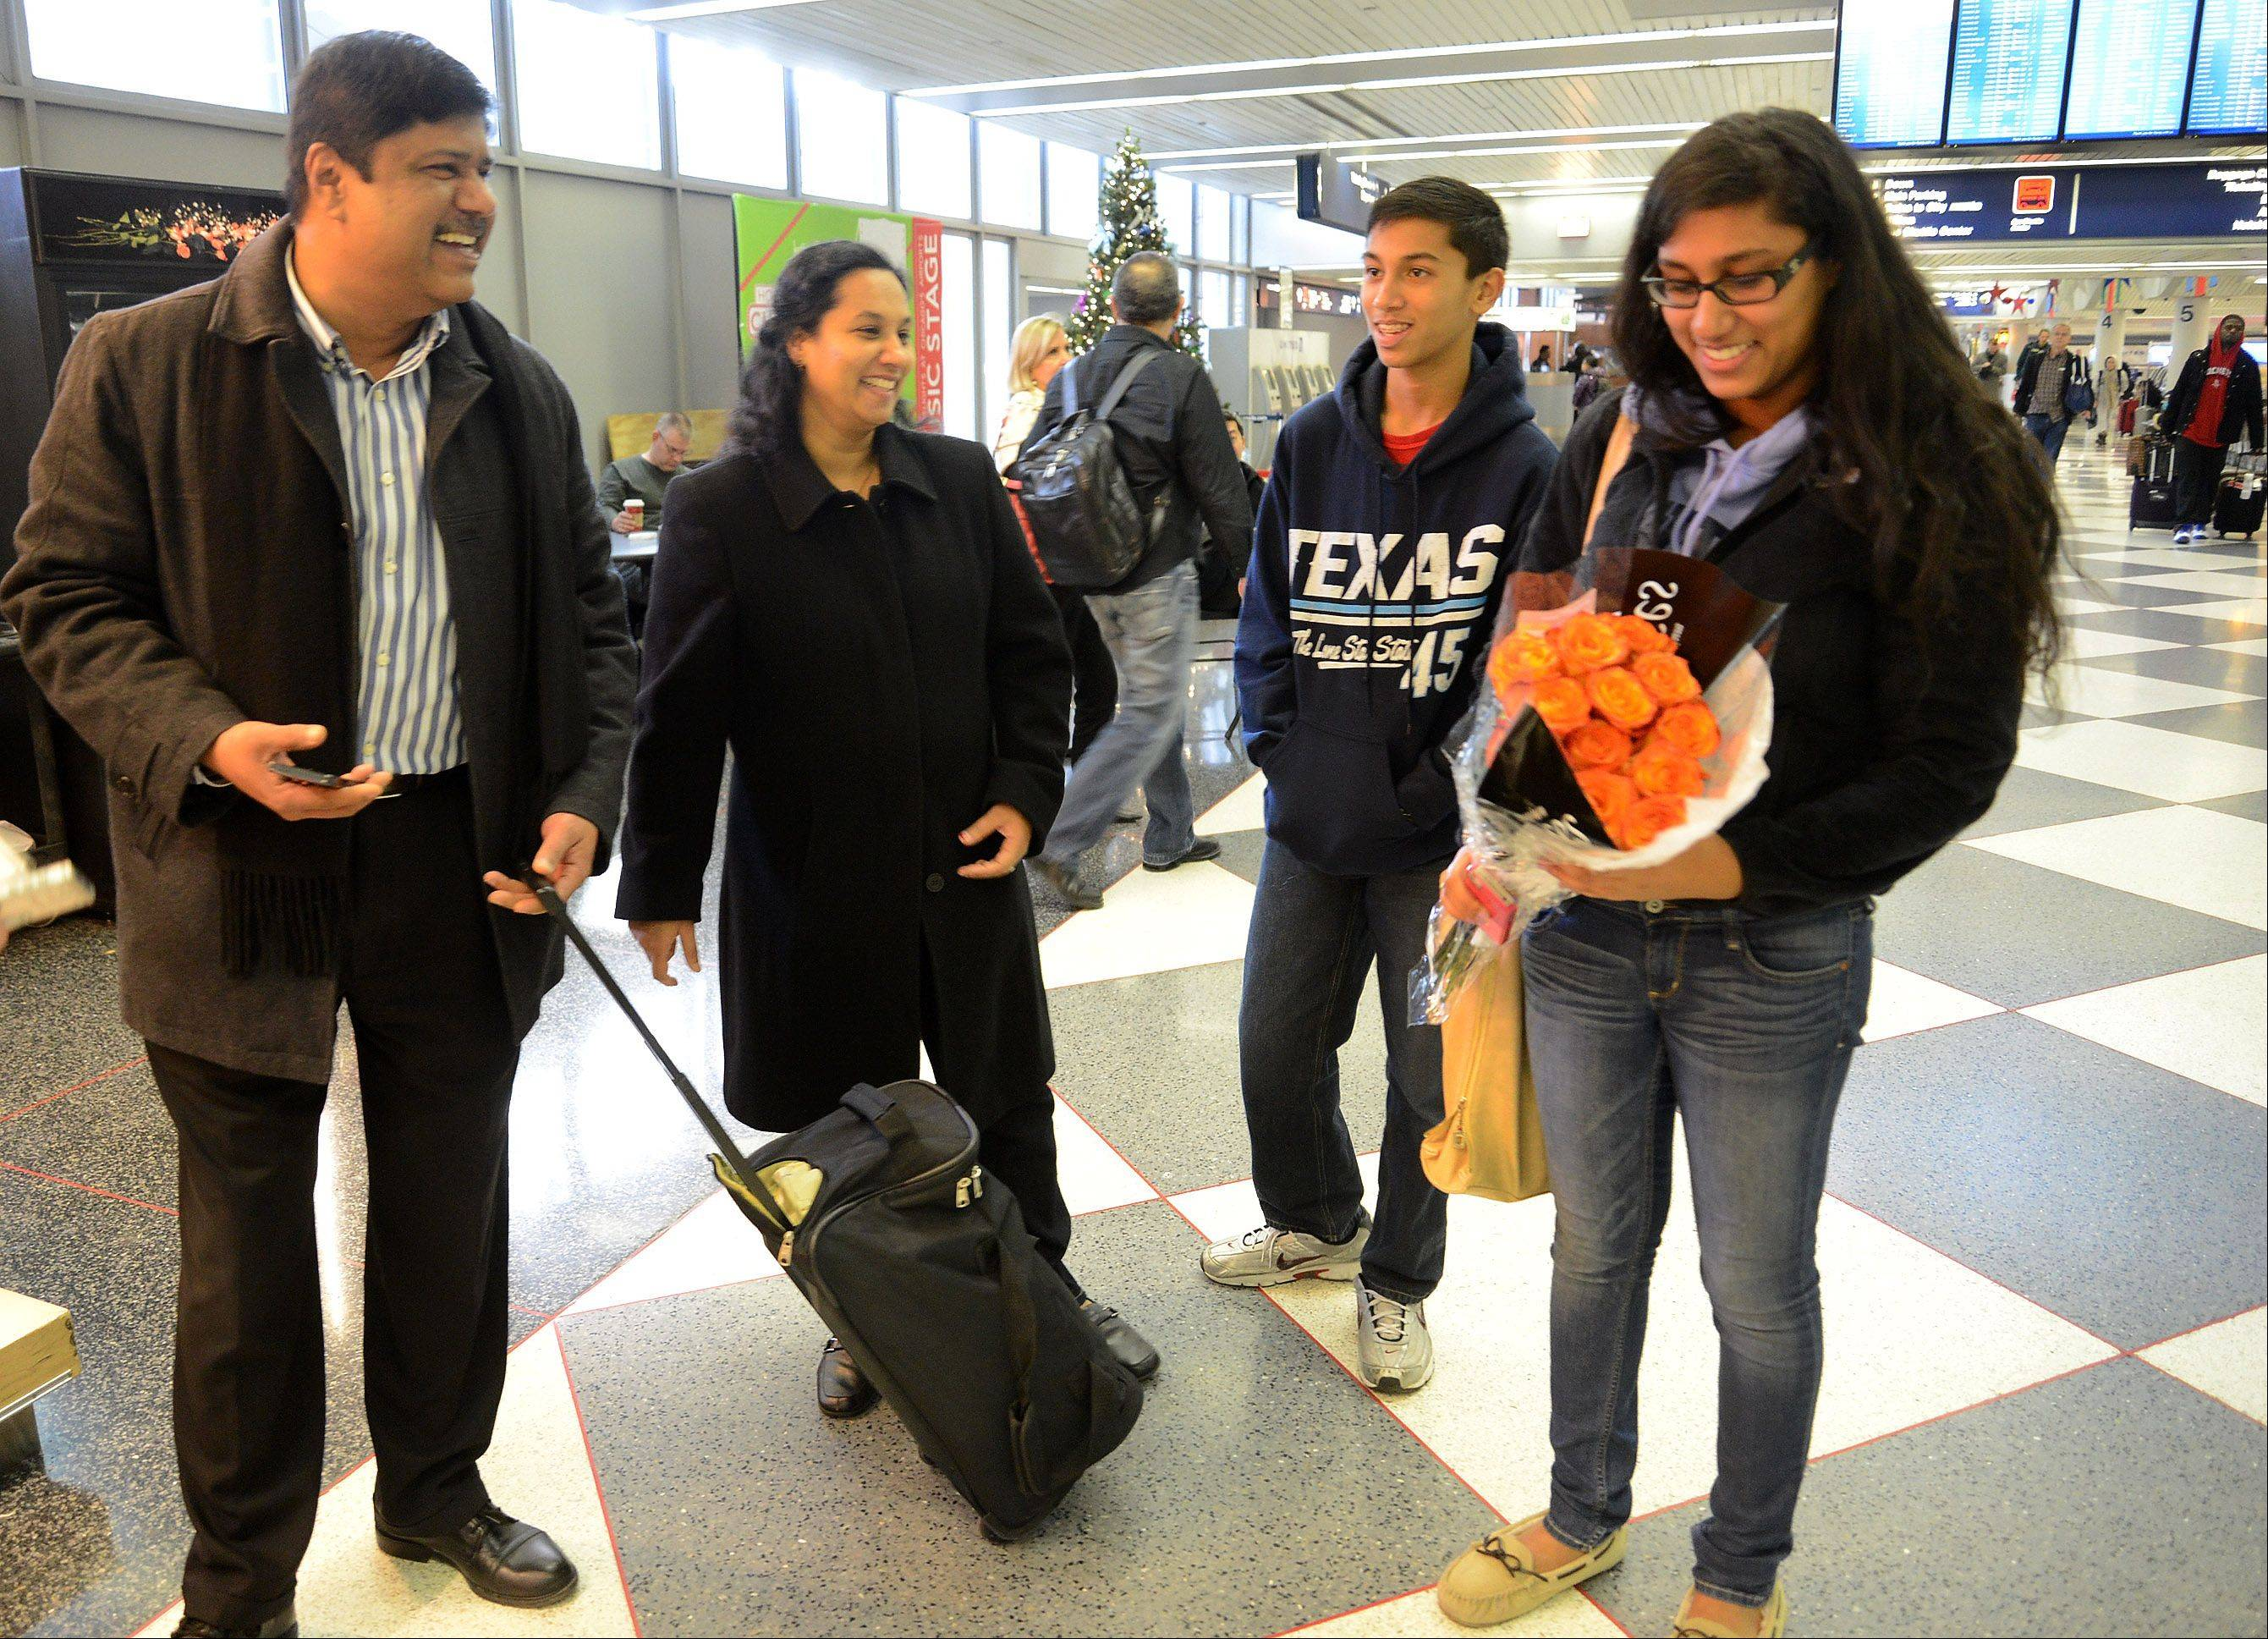 Sanjana Bendi of Palatine, a student at the University of Pittsburgh, is greeted with a bouquet by her father, Bose Bendi, mother Shanthi and brother Vijay after arriving at O'Hare International Airport.